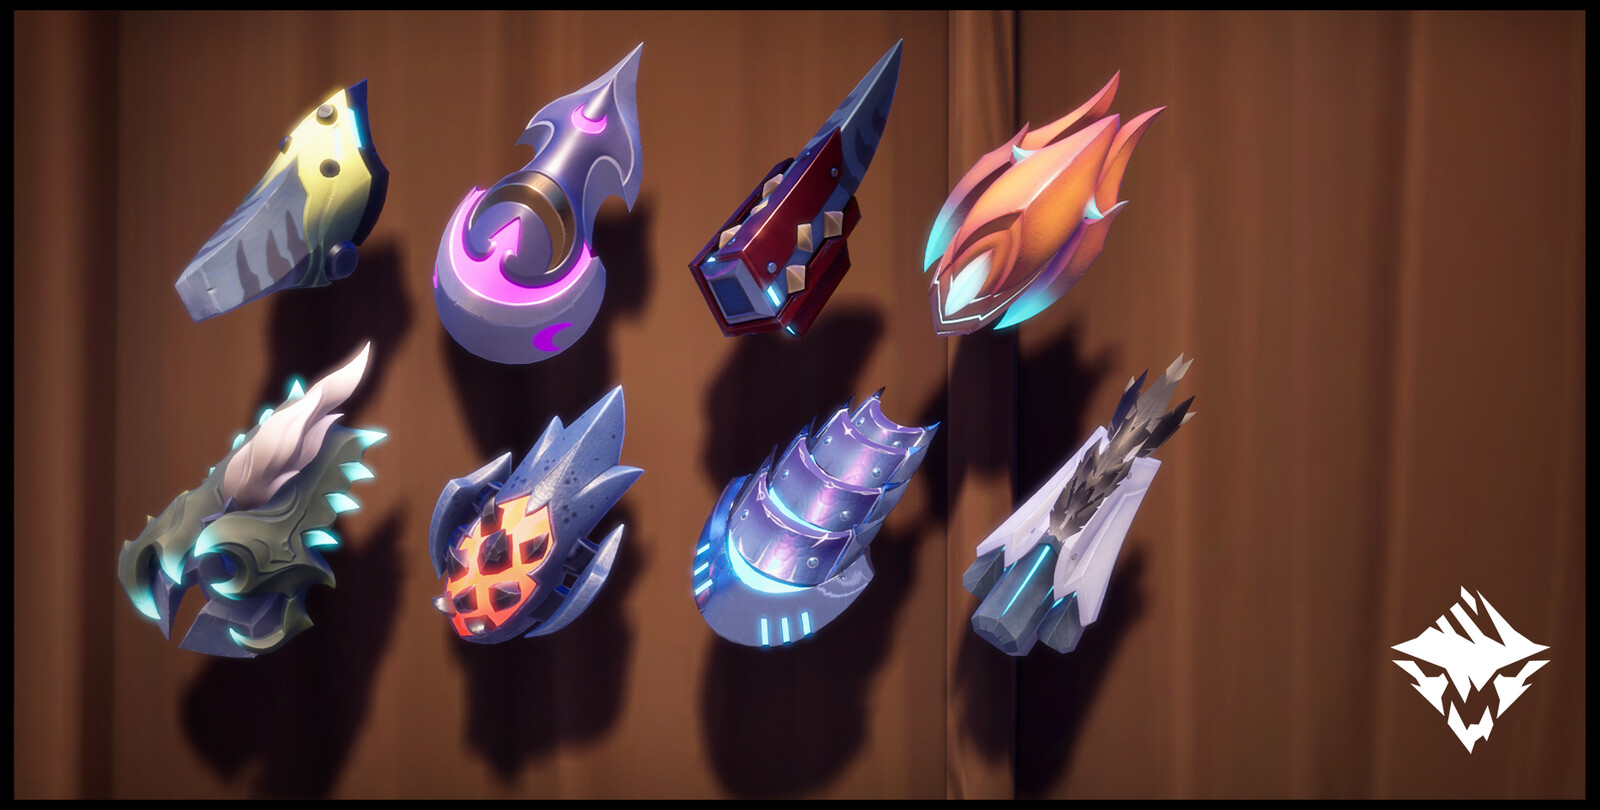 For those who wish to follow the Way of the Fist, left to right, top to bottom: Storm Breakers, Witch's Familiar, Ember Fists, Kharabak's Pincers, Sovereign's Sceptres, Charred Hands,  Pangar's Punishers, Winter Wolves.